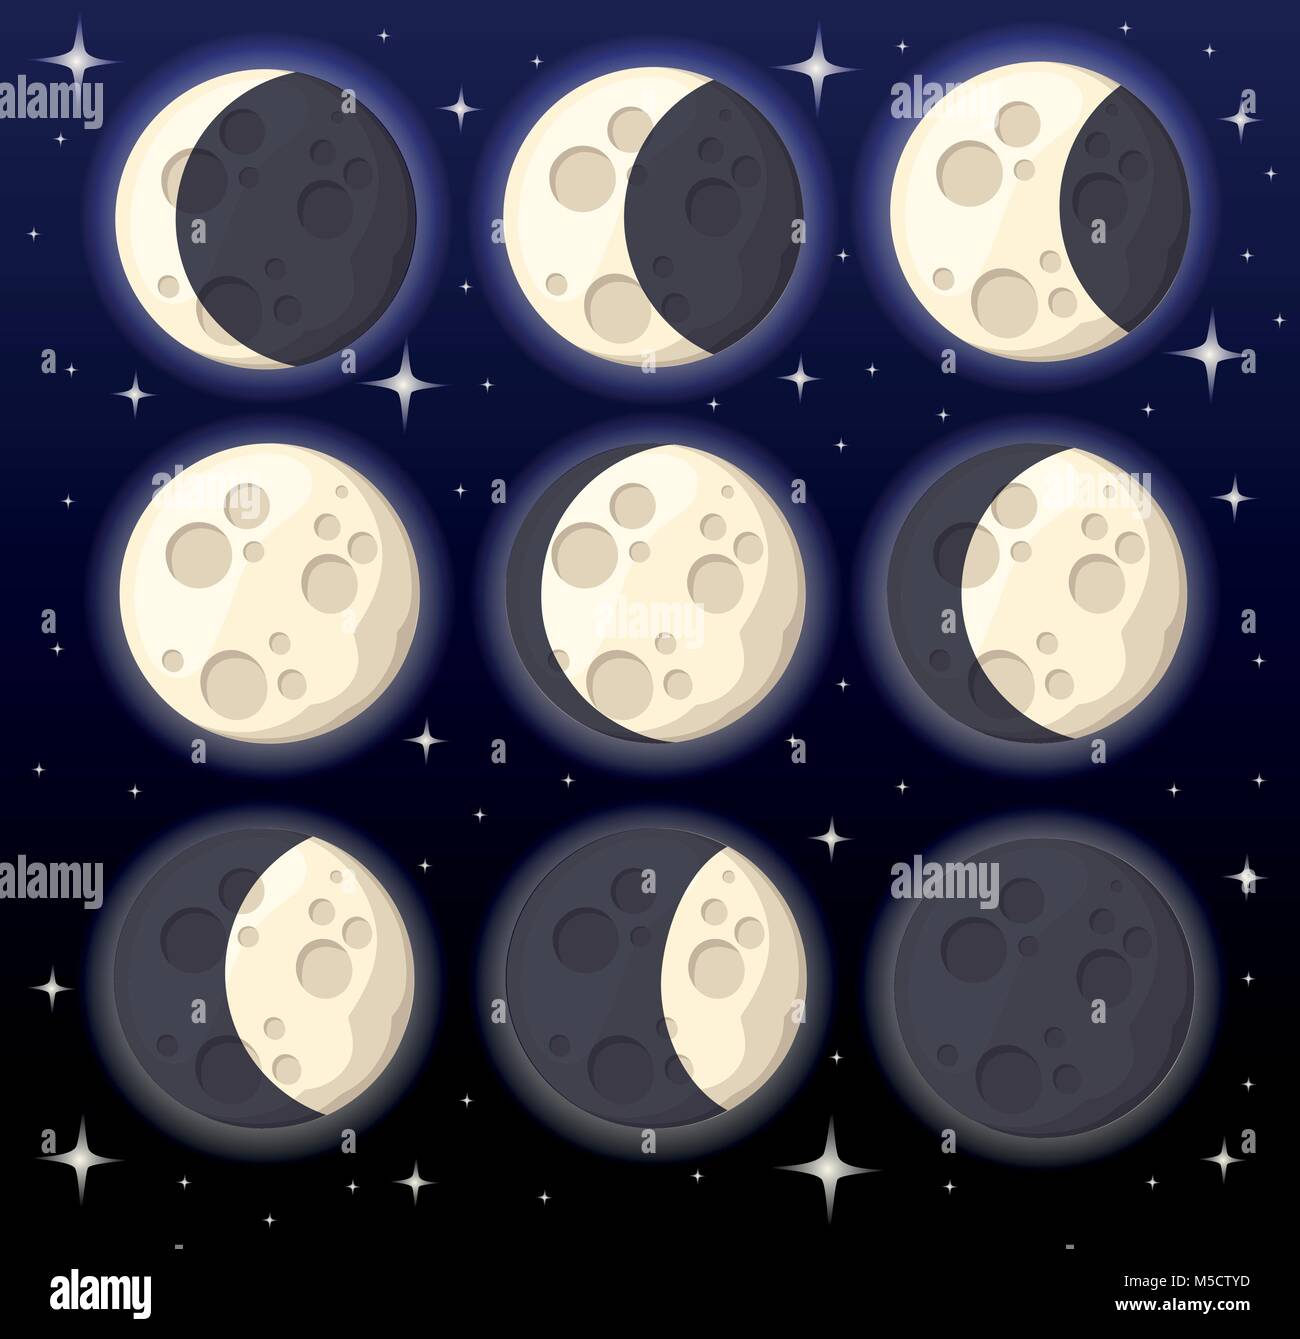 Set of different moon phases space object natural satellite of the earth vector illustration isolated on night background - Stock Vector